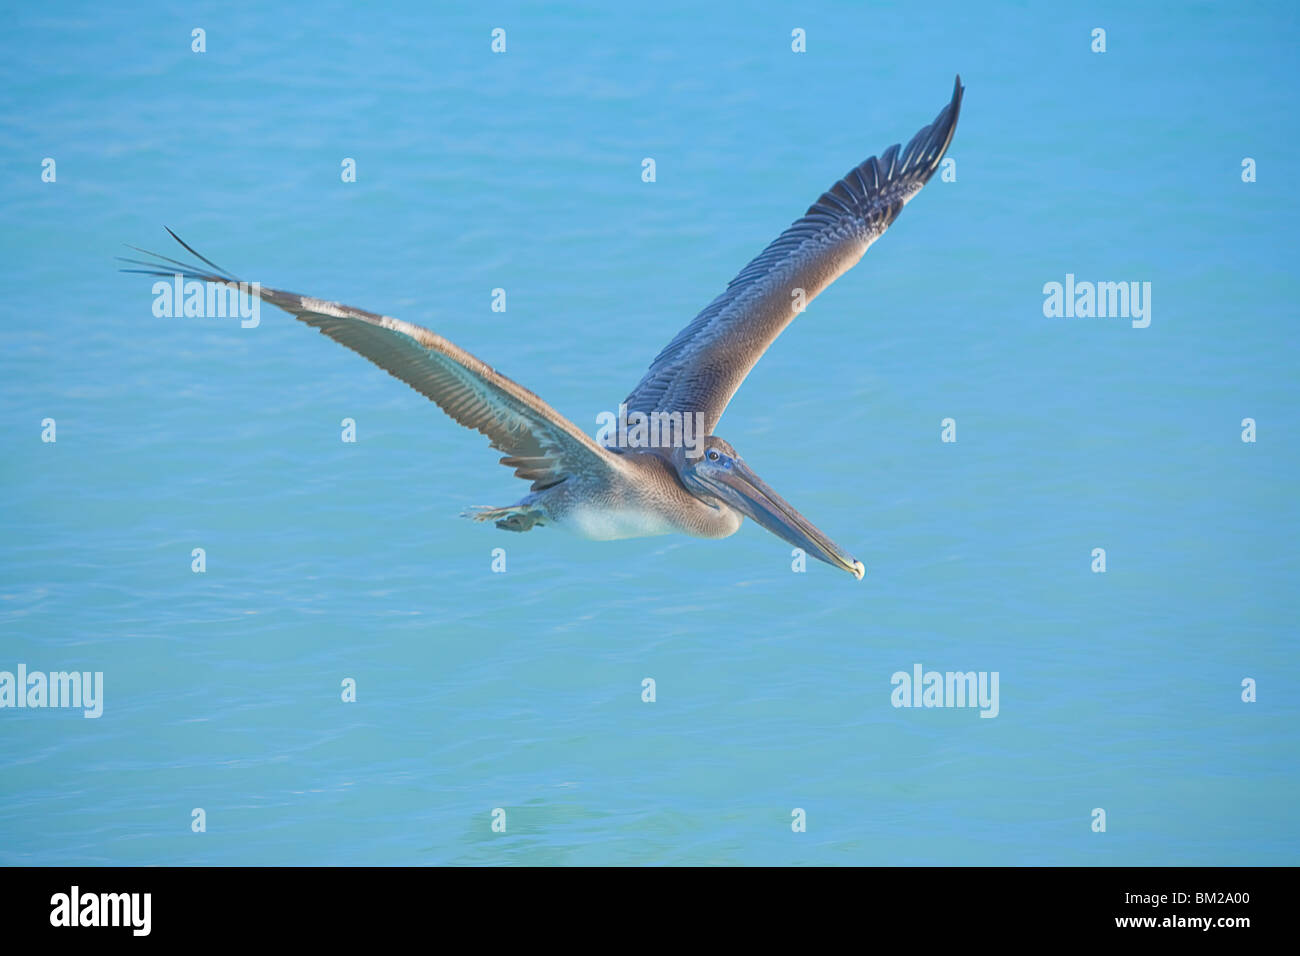 Pelican flying over sea, Key West, Florida, USA - Stock Image